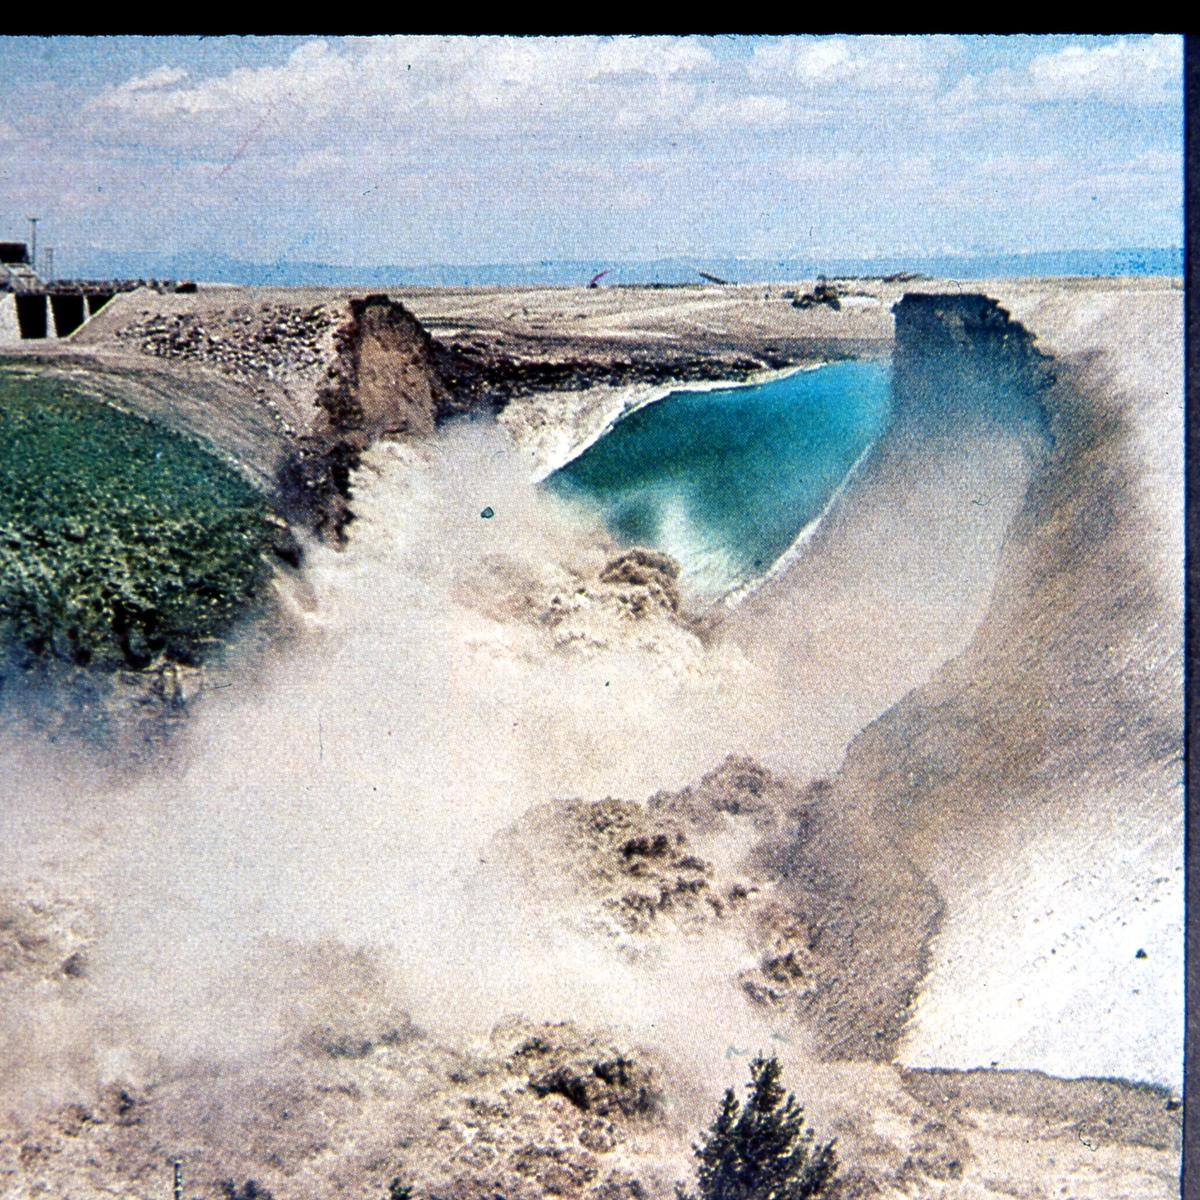 40th anniversary of the collapse of the Teton Dam - Deseret News